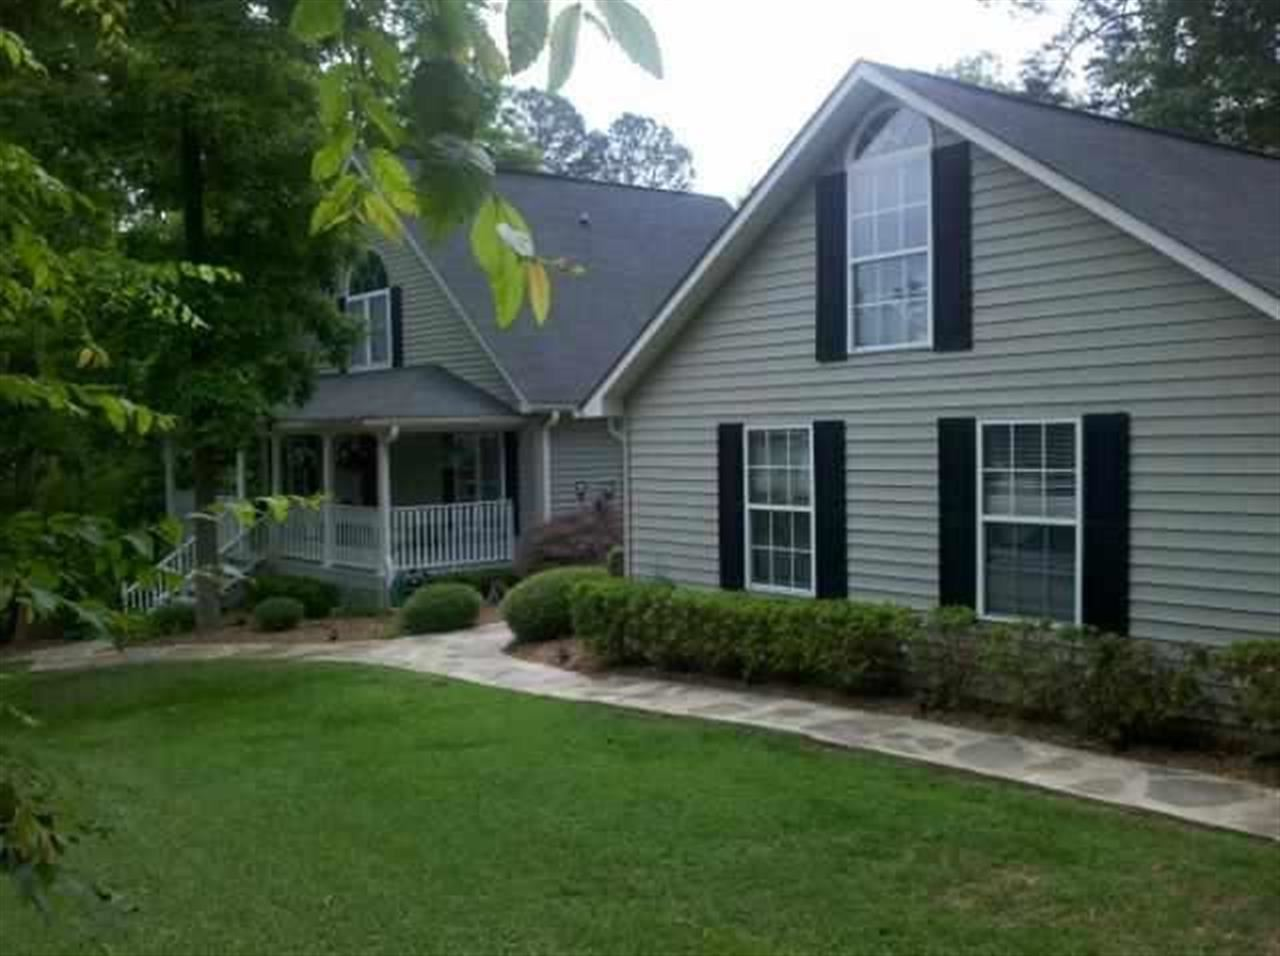 Real Estate for Sale, ListingId: 25404561, Central, SC  29630